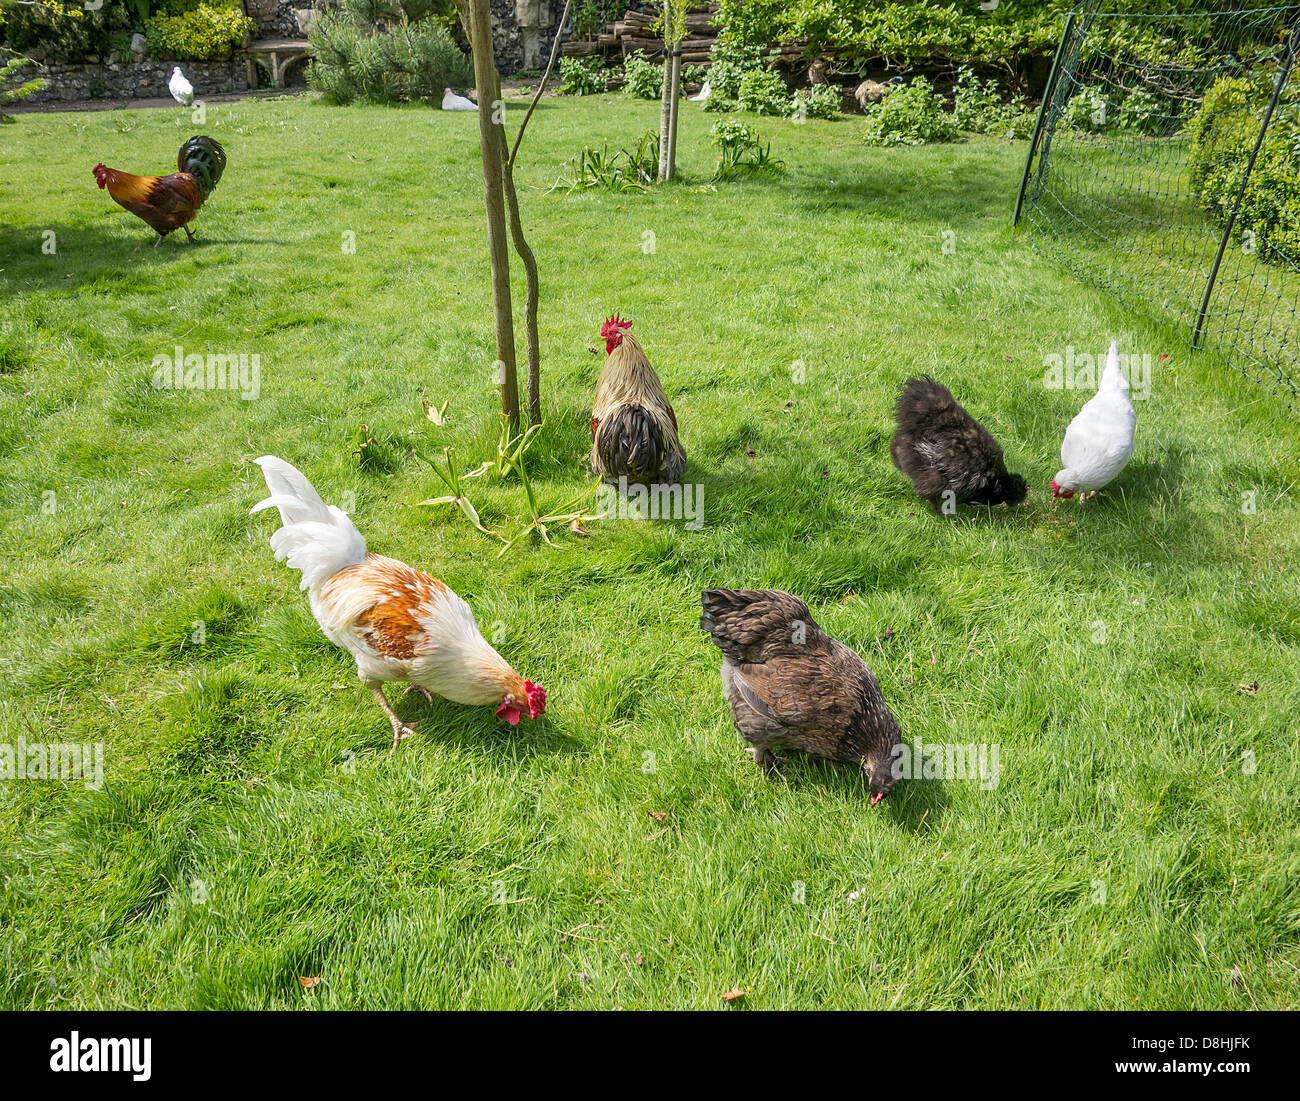 Pet Domestic Chickens in a Garden - Stock Image